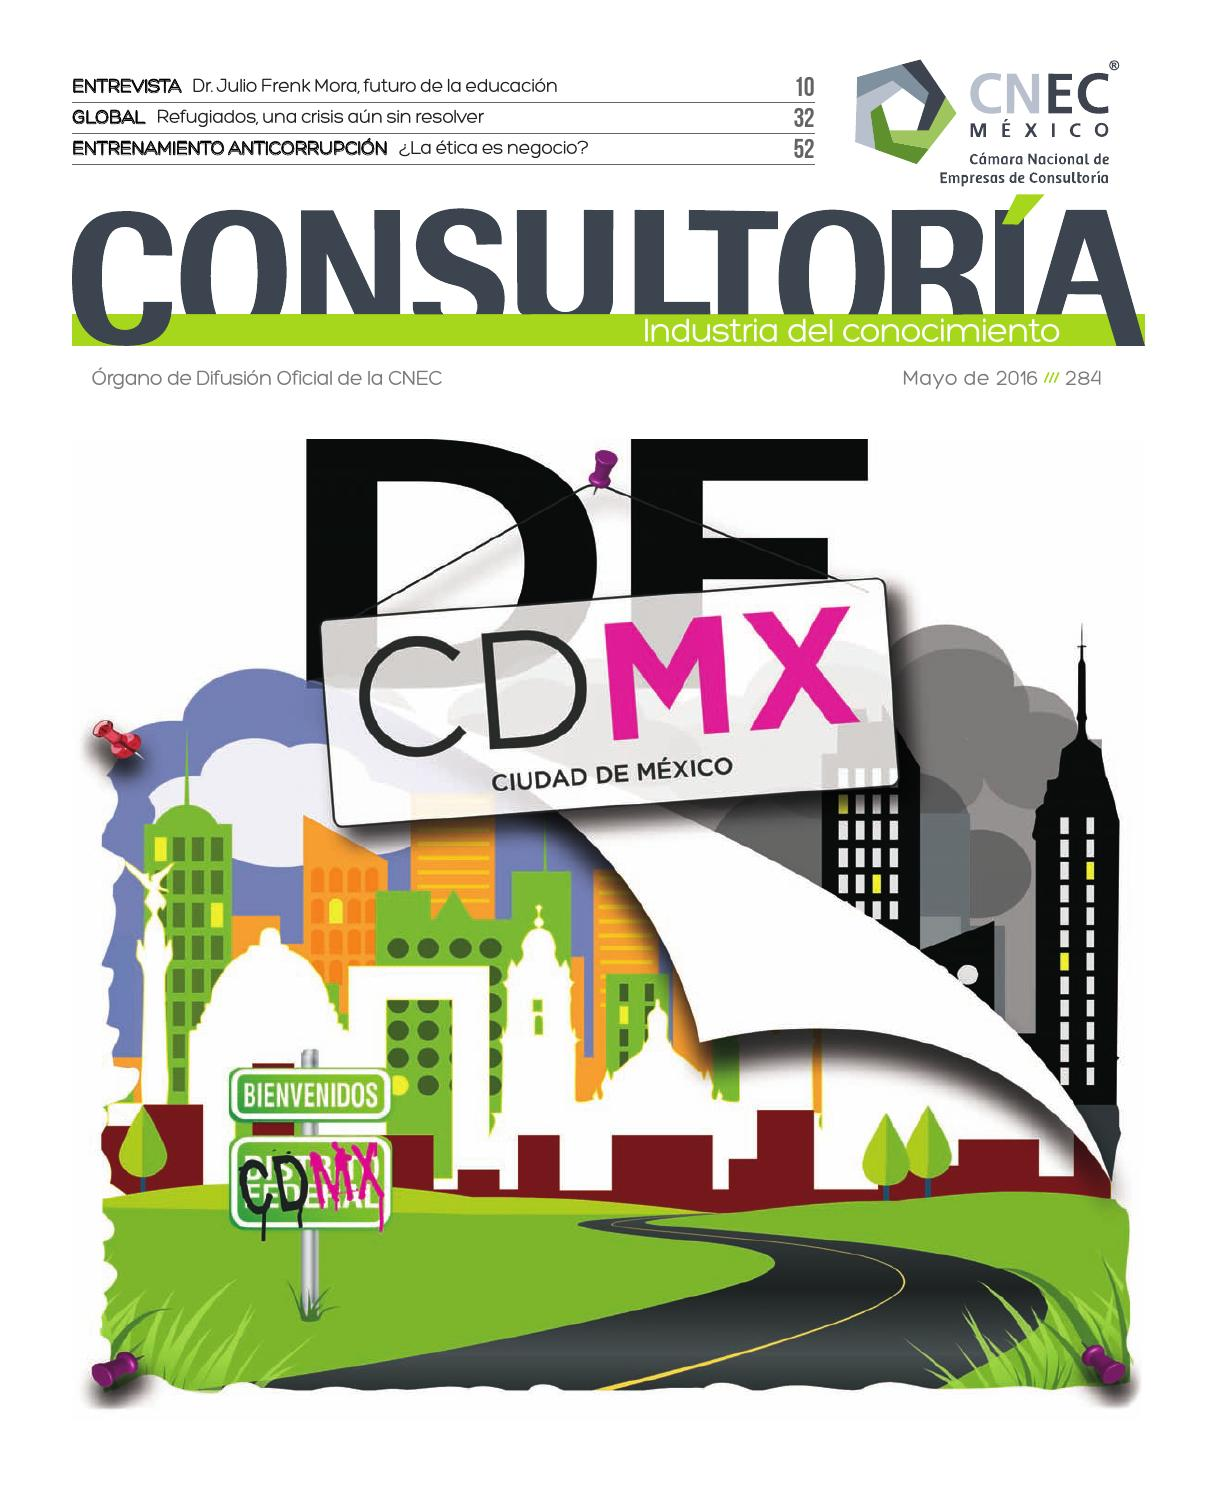 revista consultoria mayo 2016 by DSmx - issuu